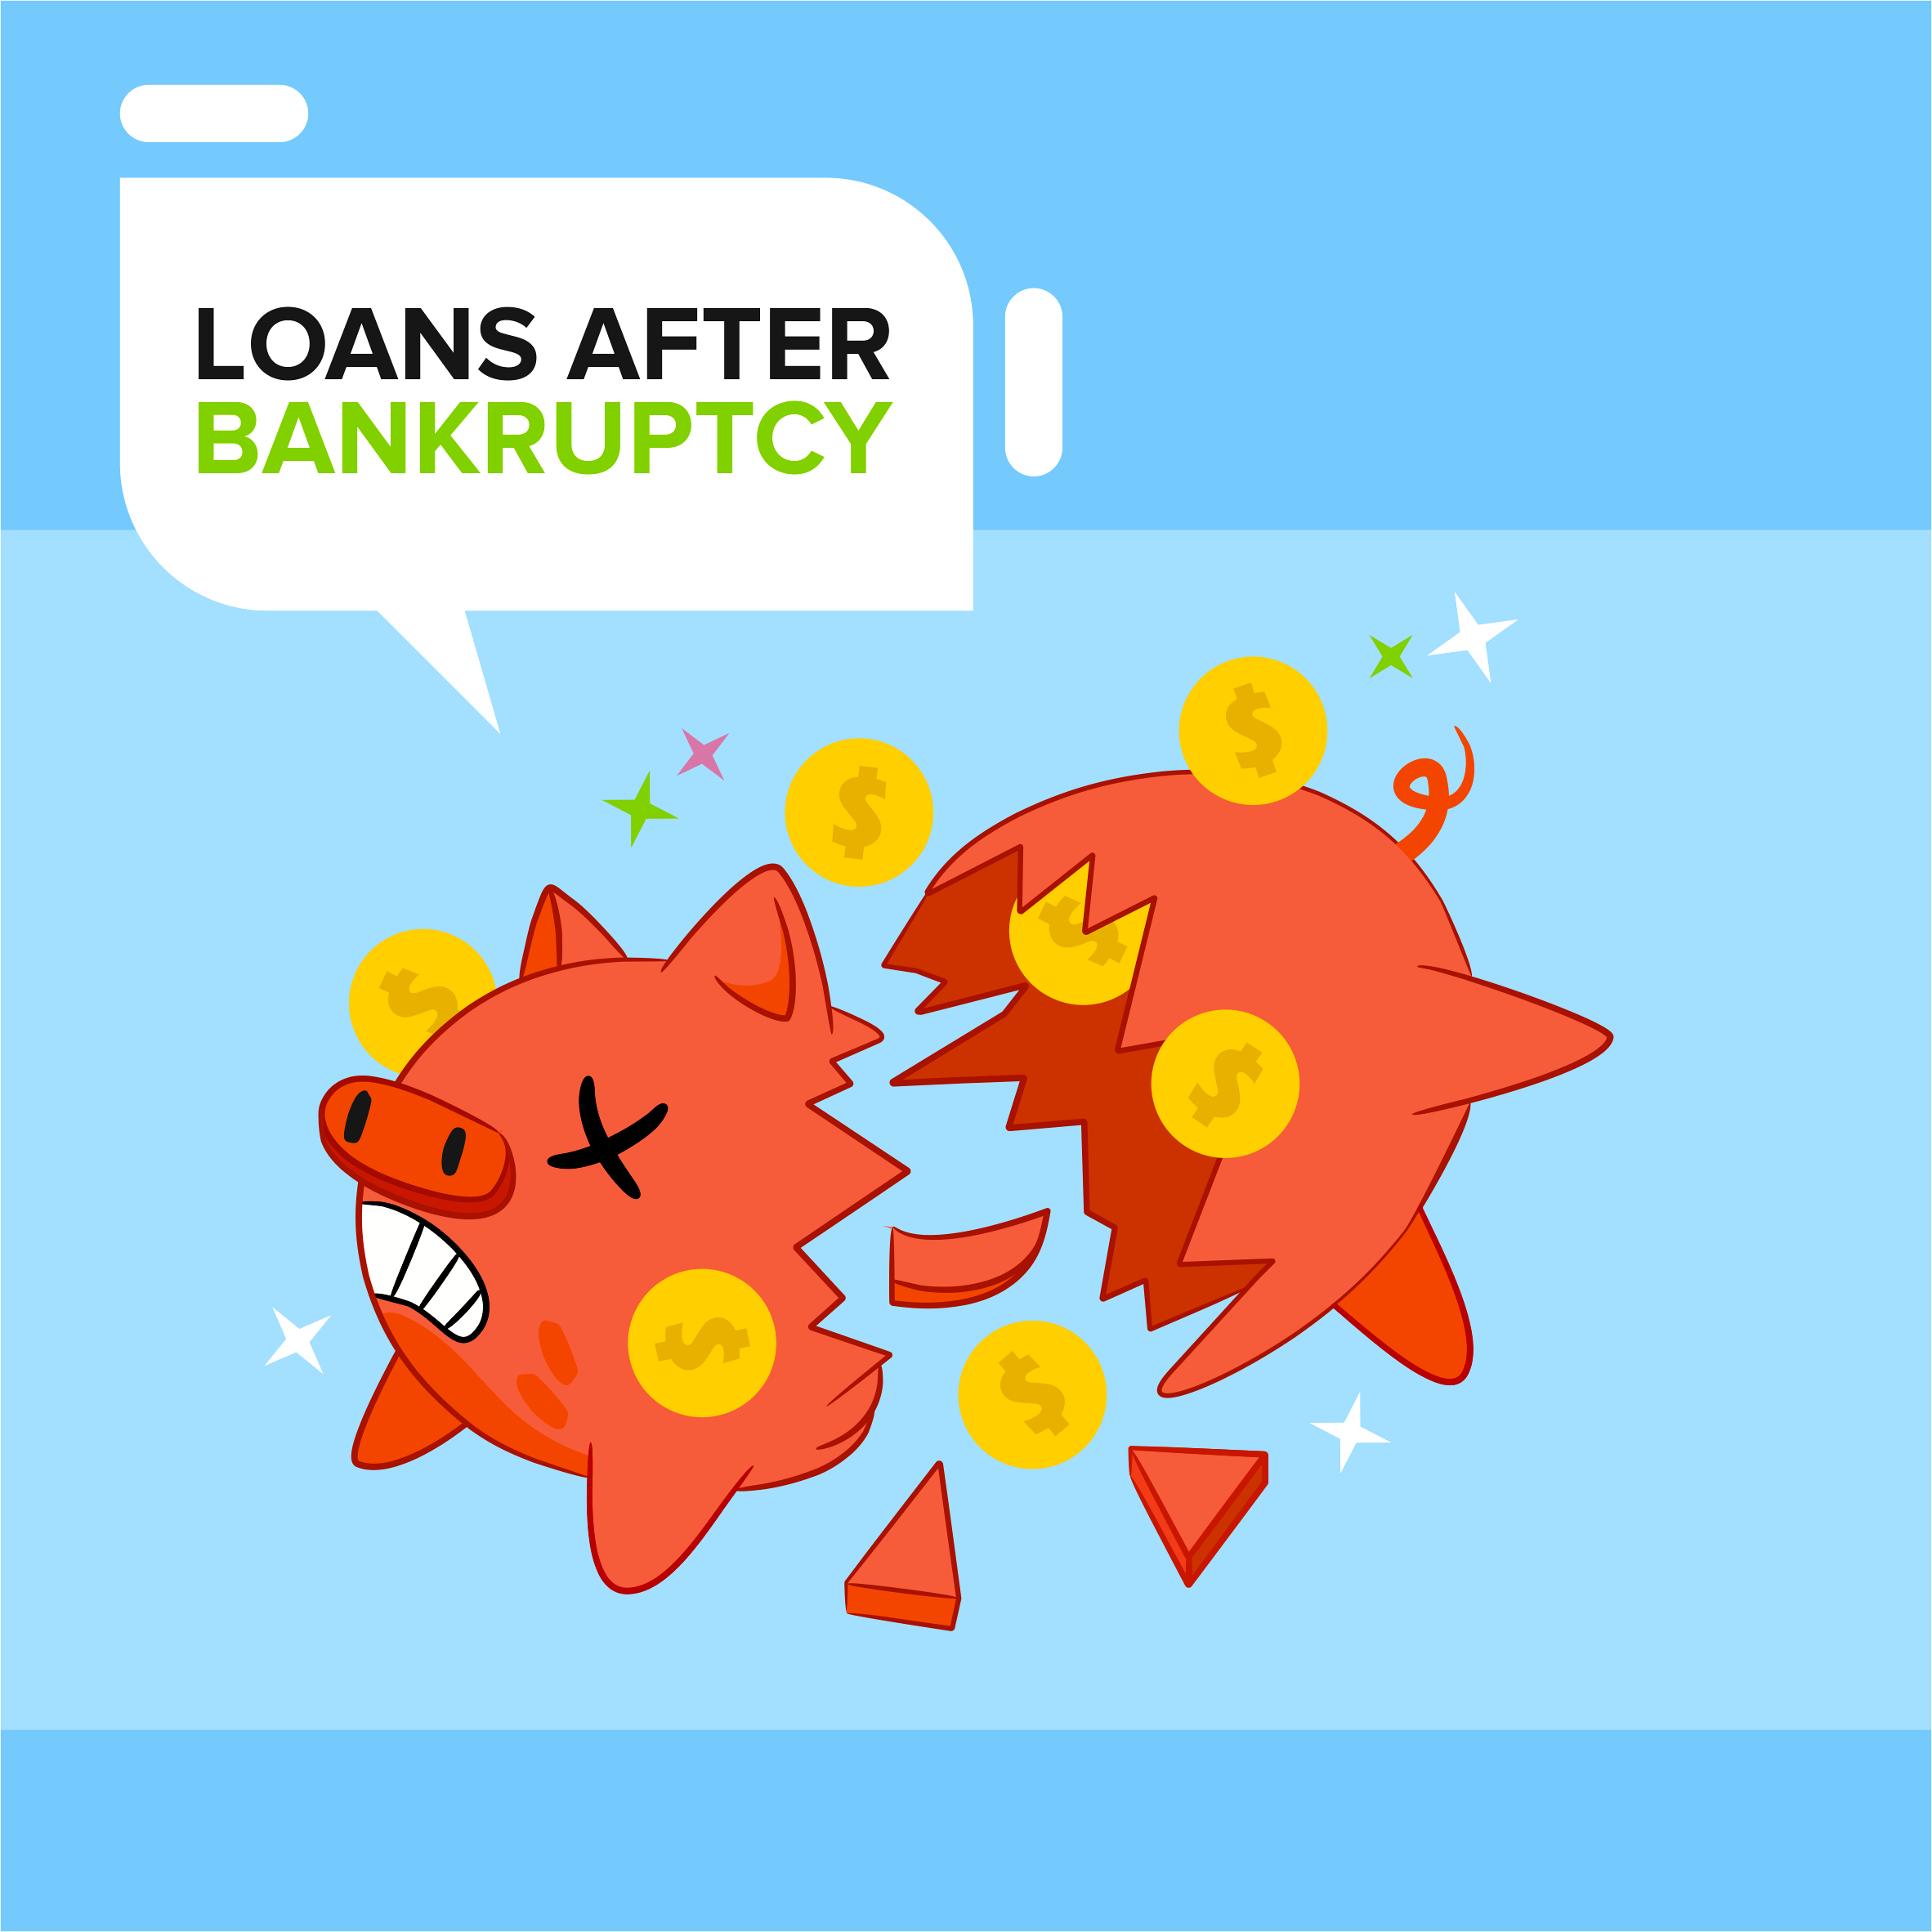 Loans after Bankruptcy